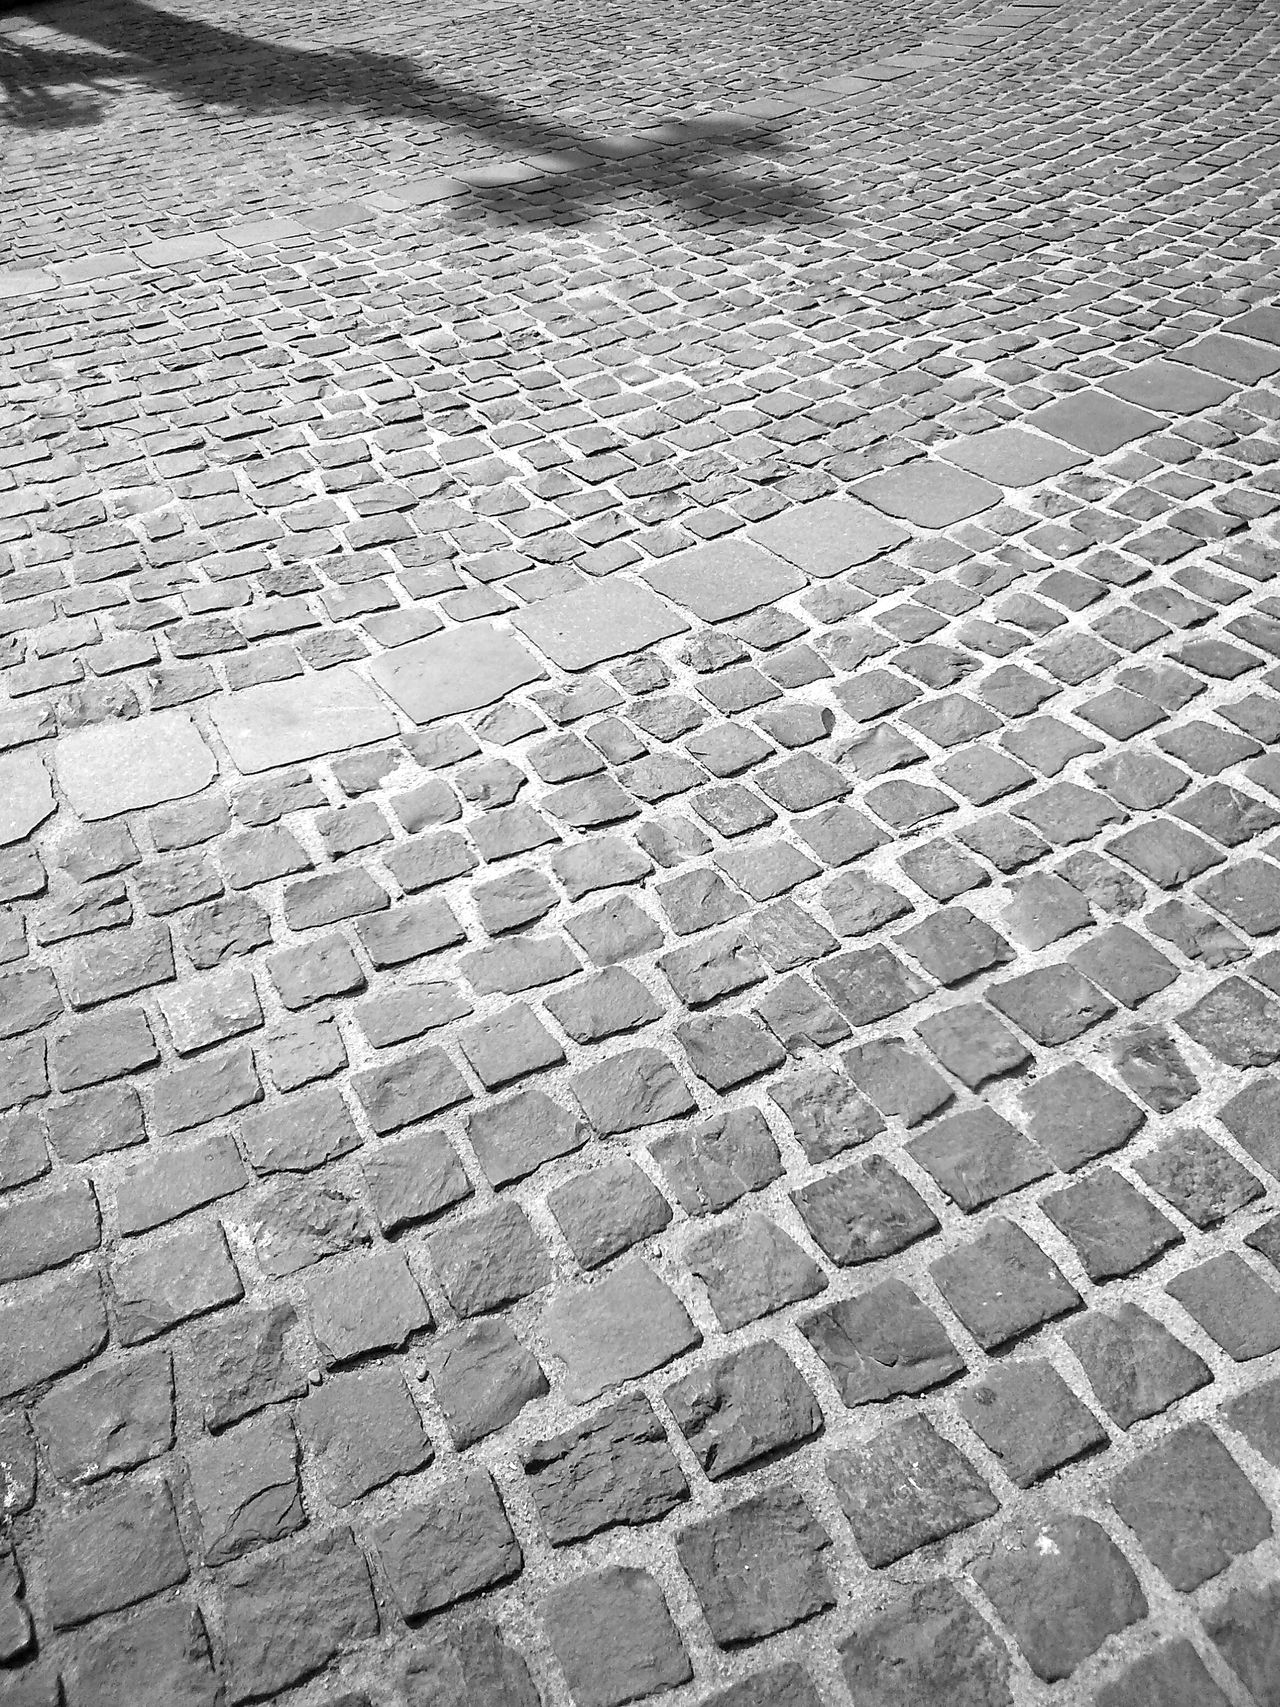 Cobblestone Cobblestone Streets B&w Photography Street Photography